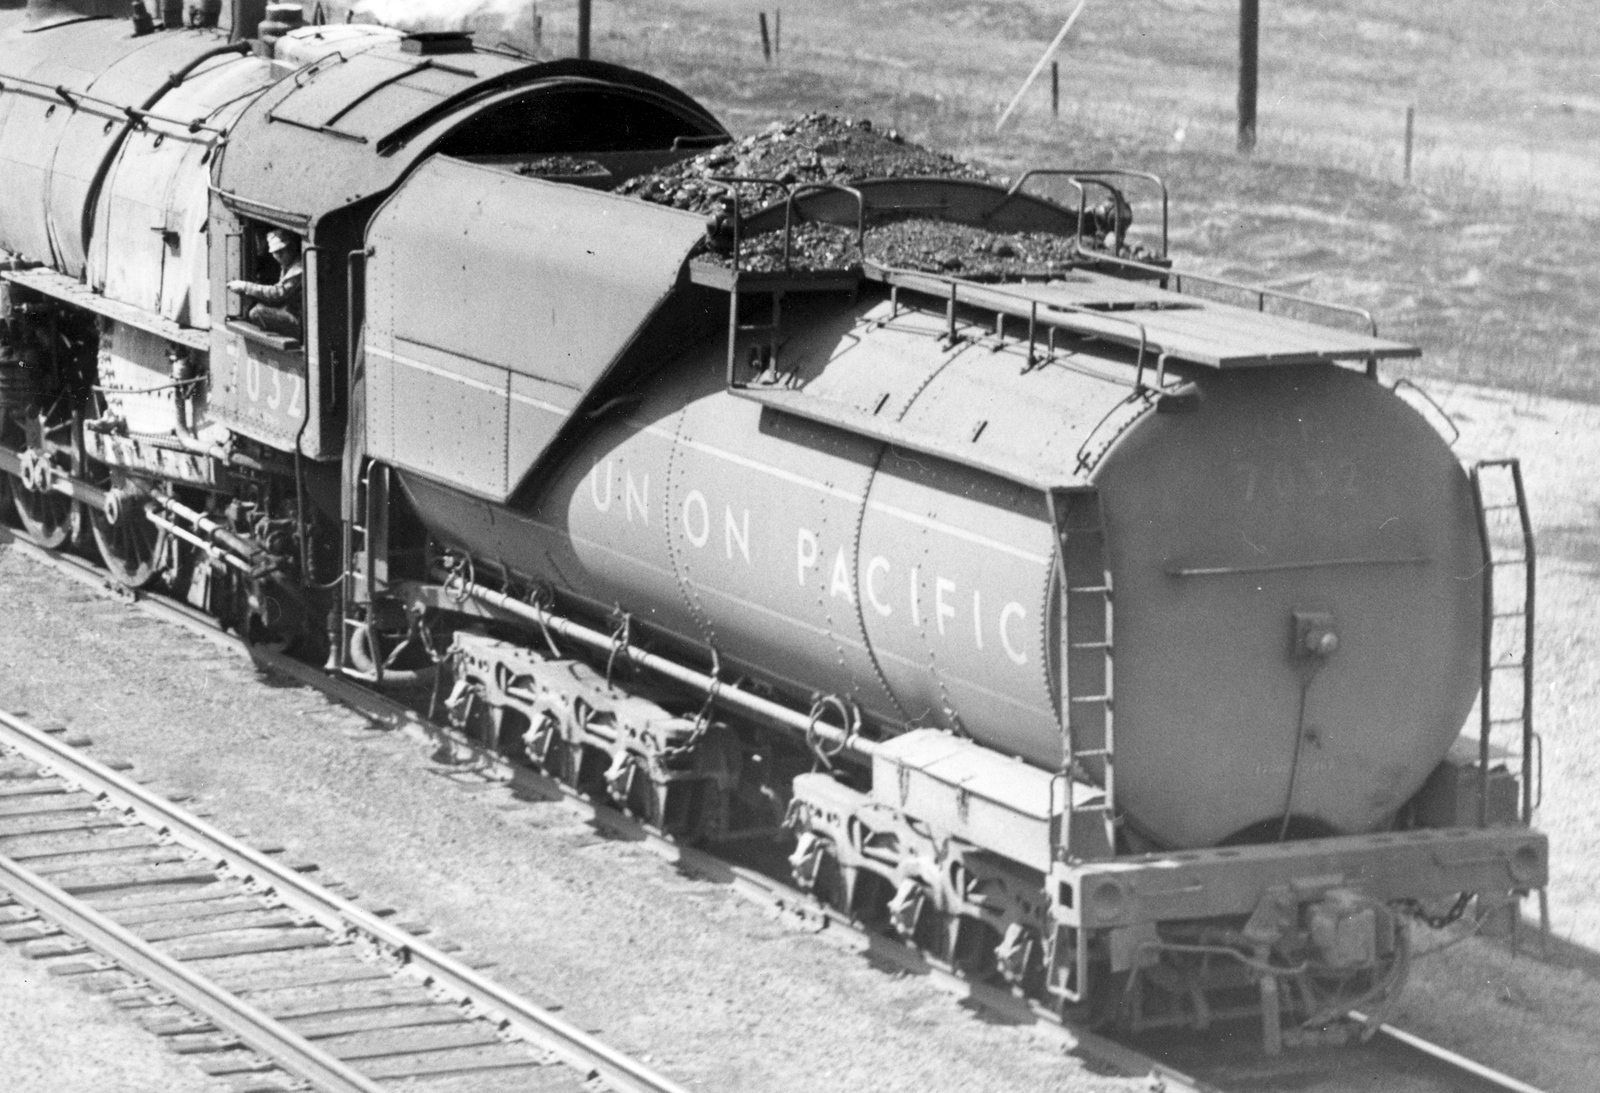 up_4-8-2-7032-tender_apr-17-1948_r-h-kindig-photo_dave-england-collection